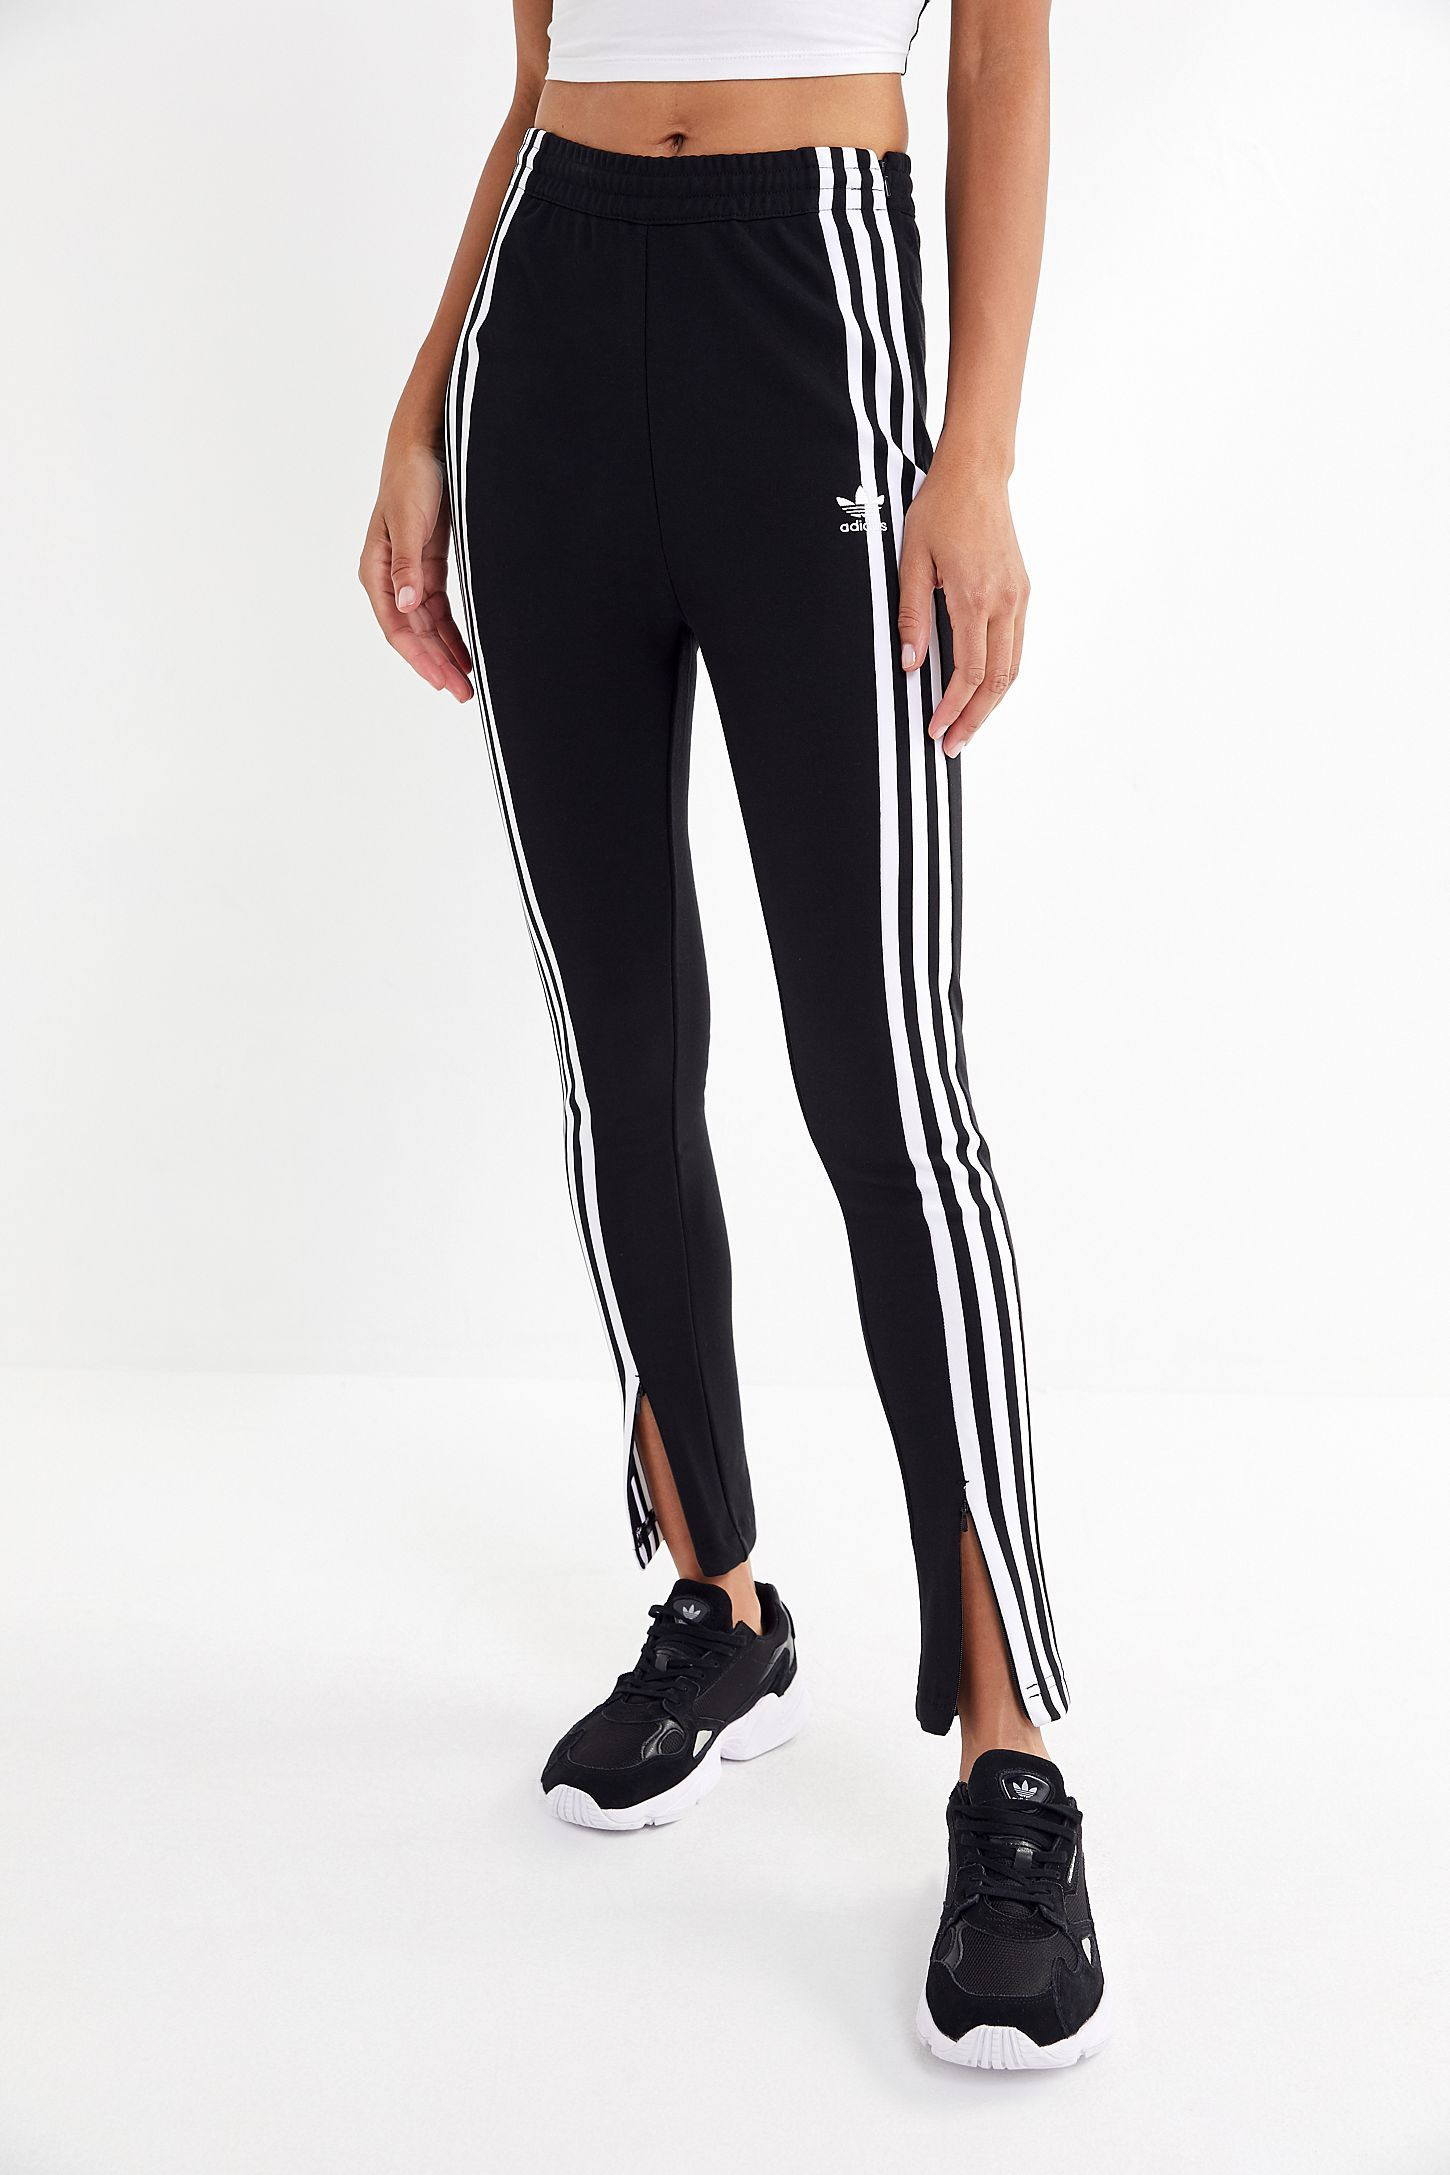 2eae44848809 Slide View  4  adidas High-Rise Split-Ankle Track Pant